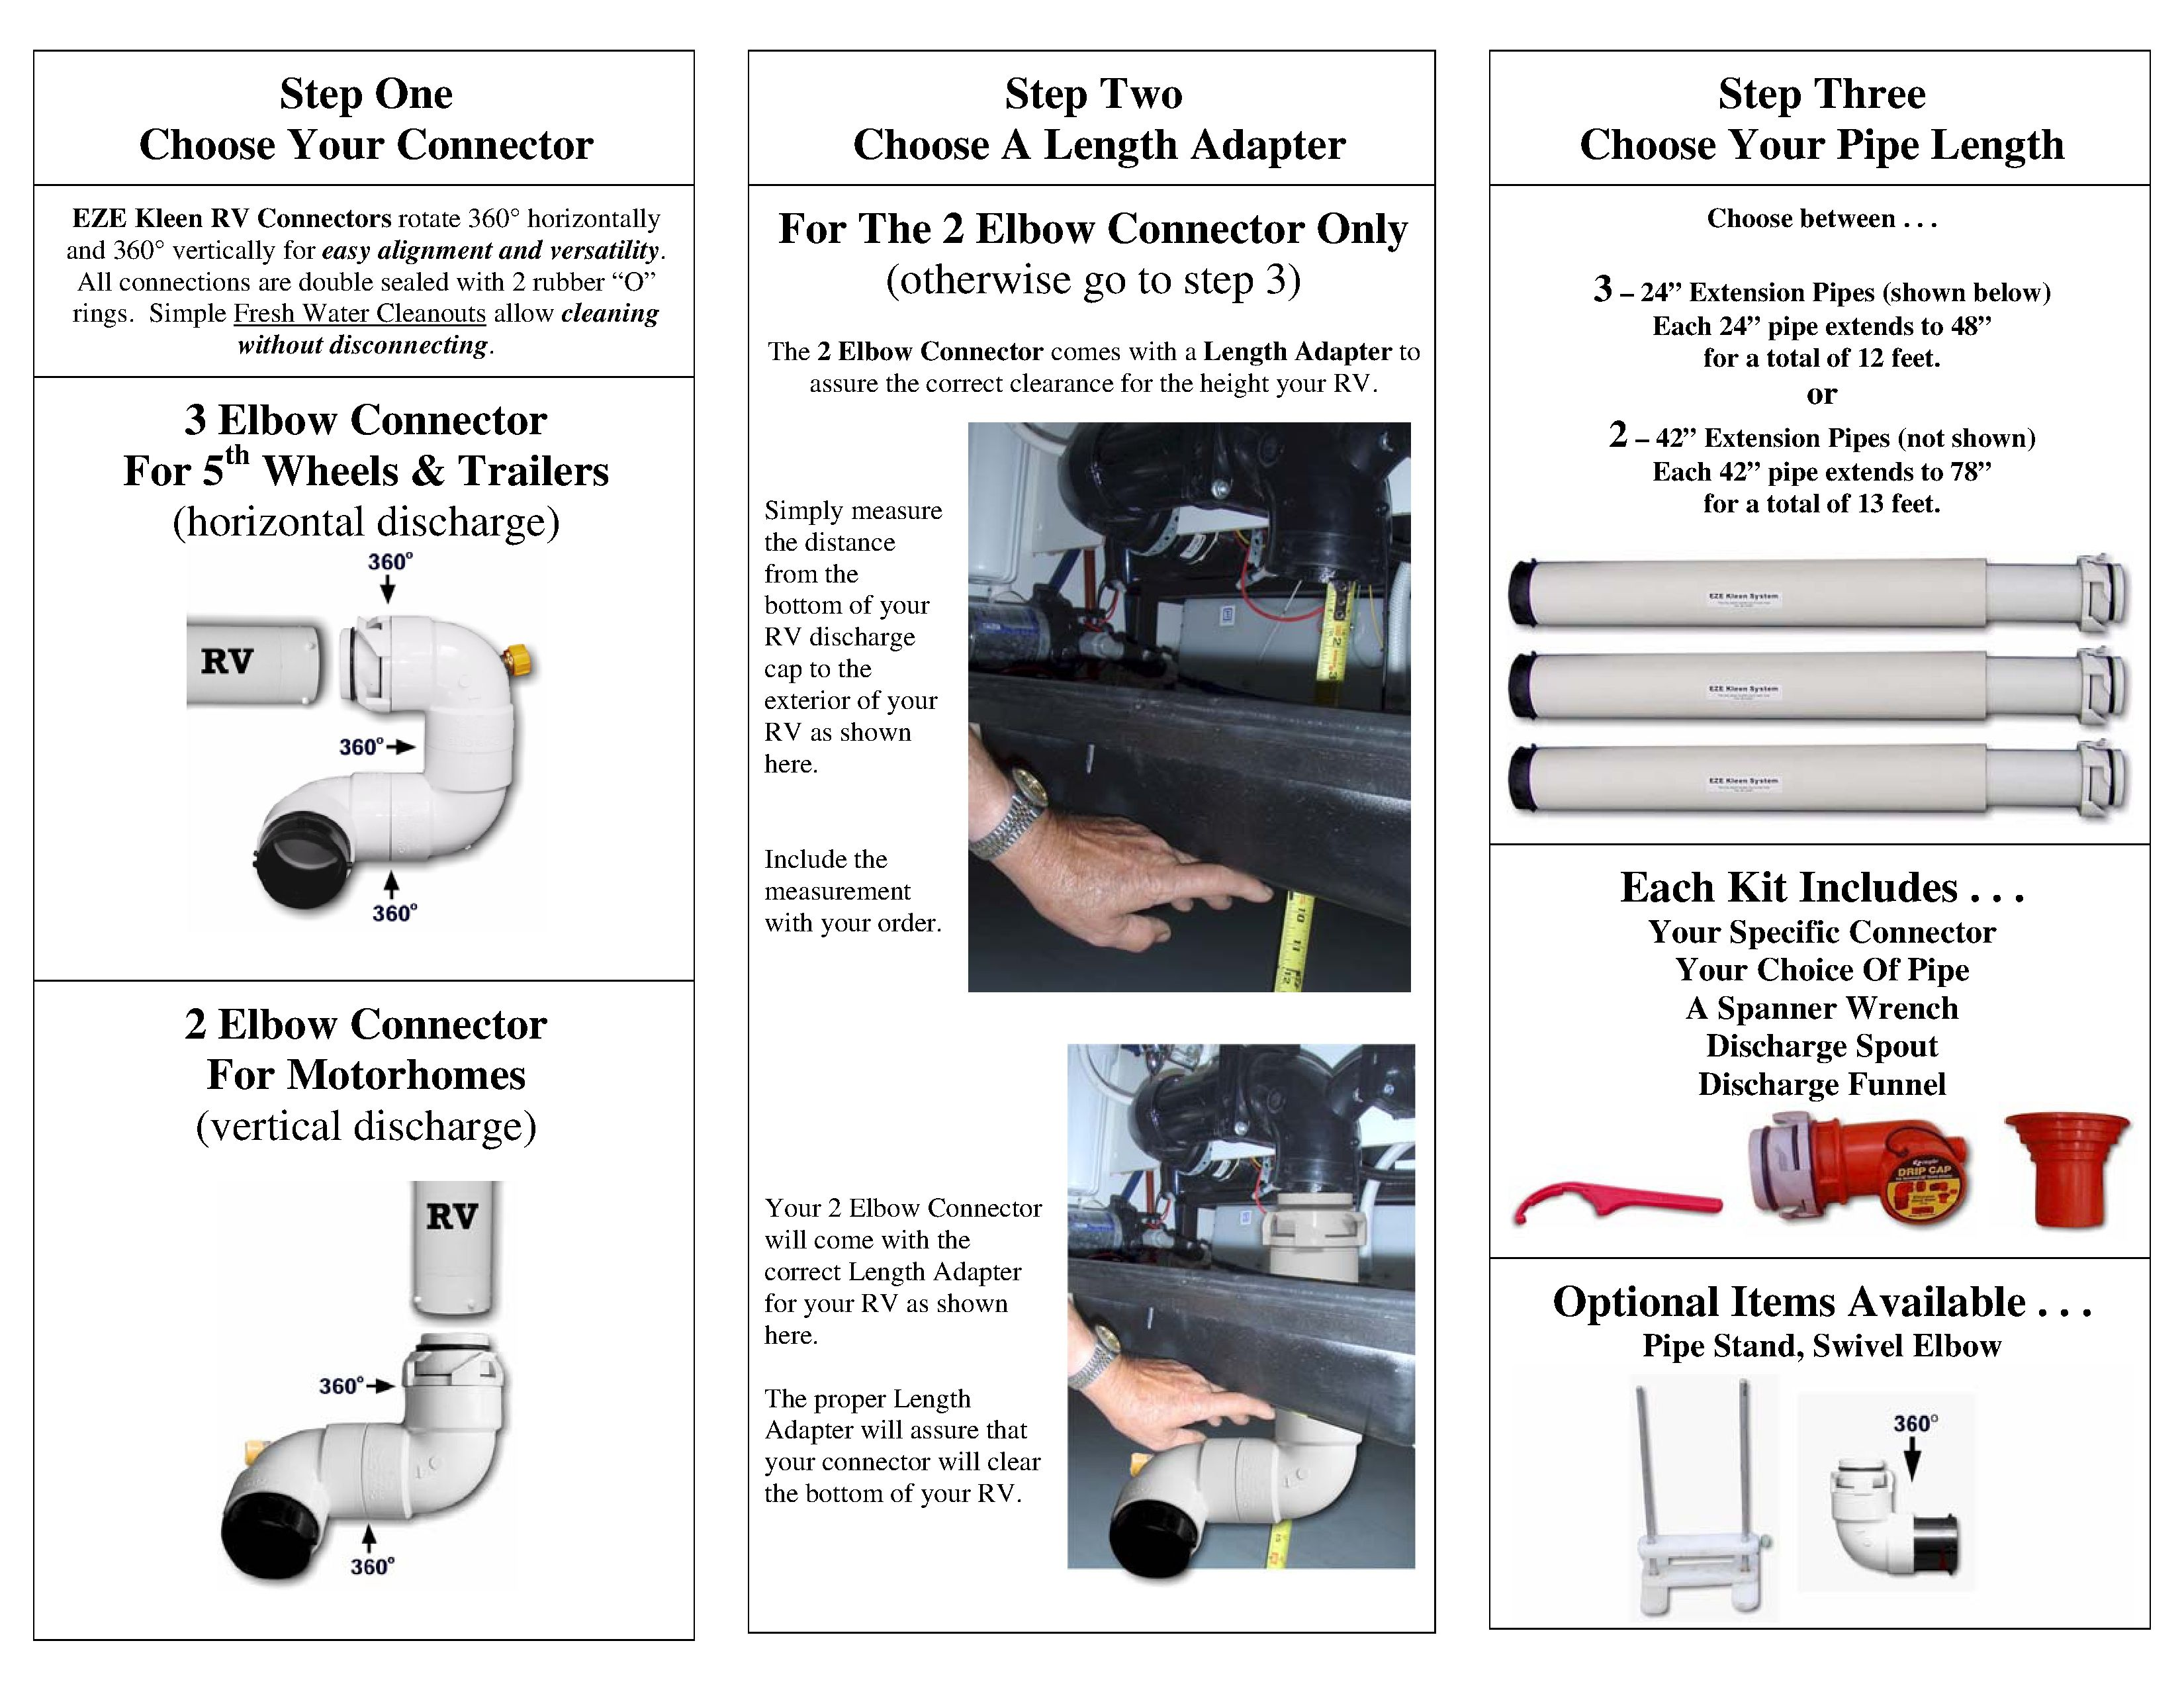 Eze Kleen The Only Rv Sewer System You Ll Ever Love Sewer System Rv Sewer